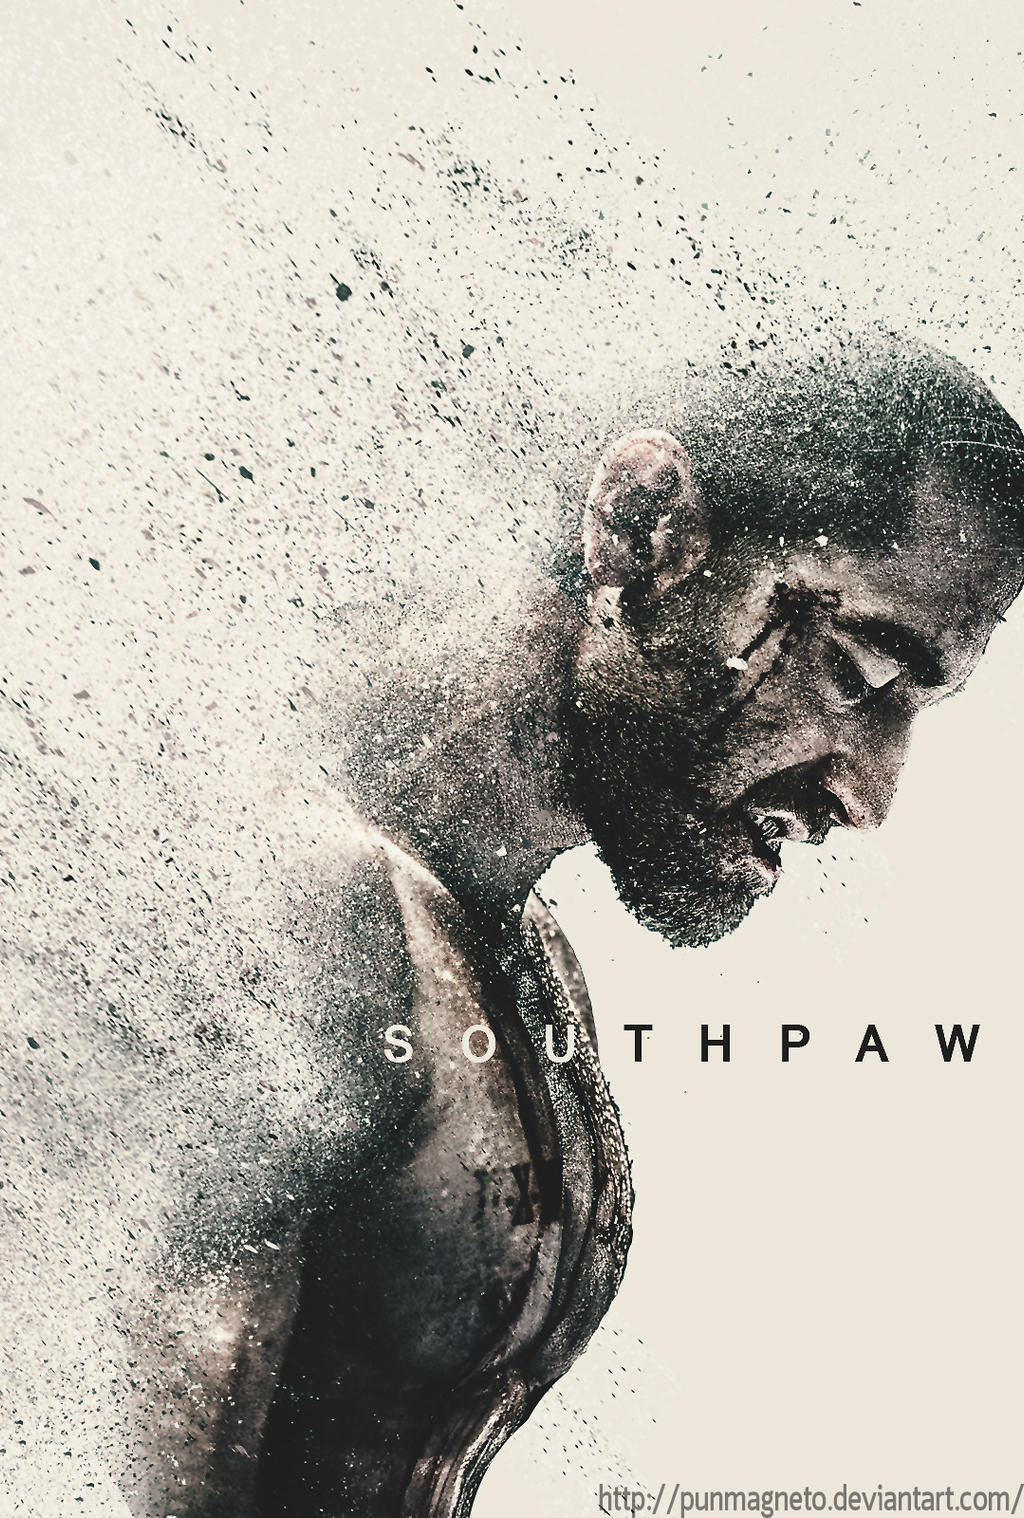 Southpaw Fanmade Poster